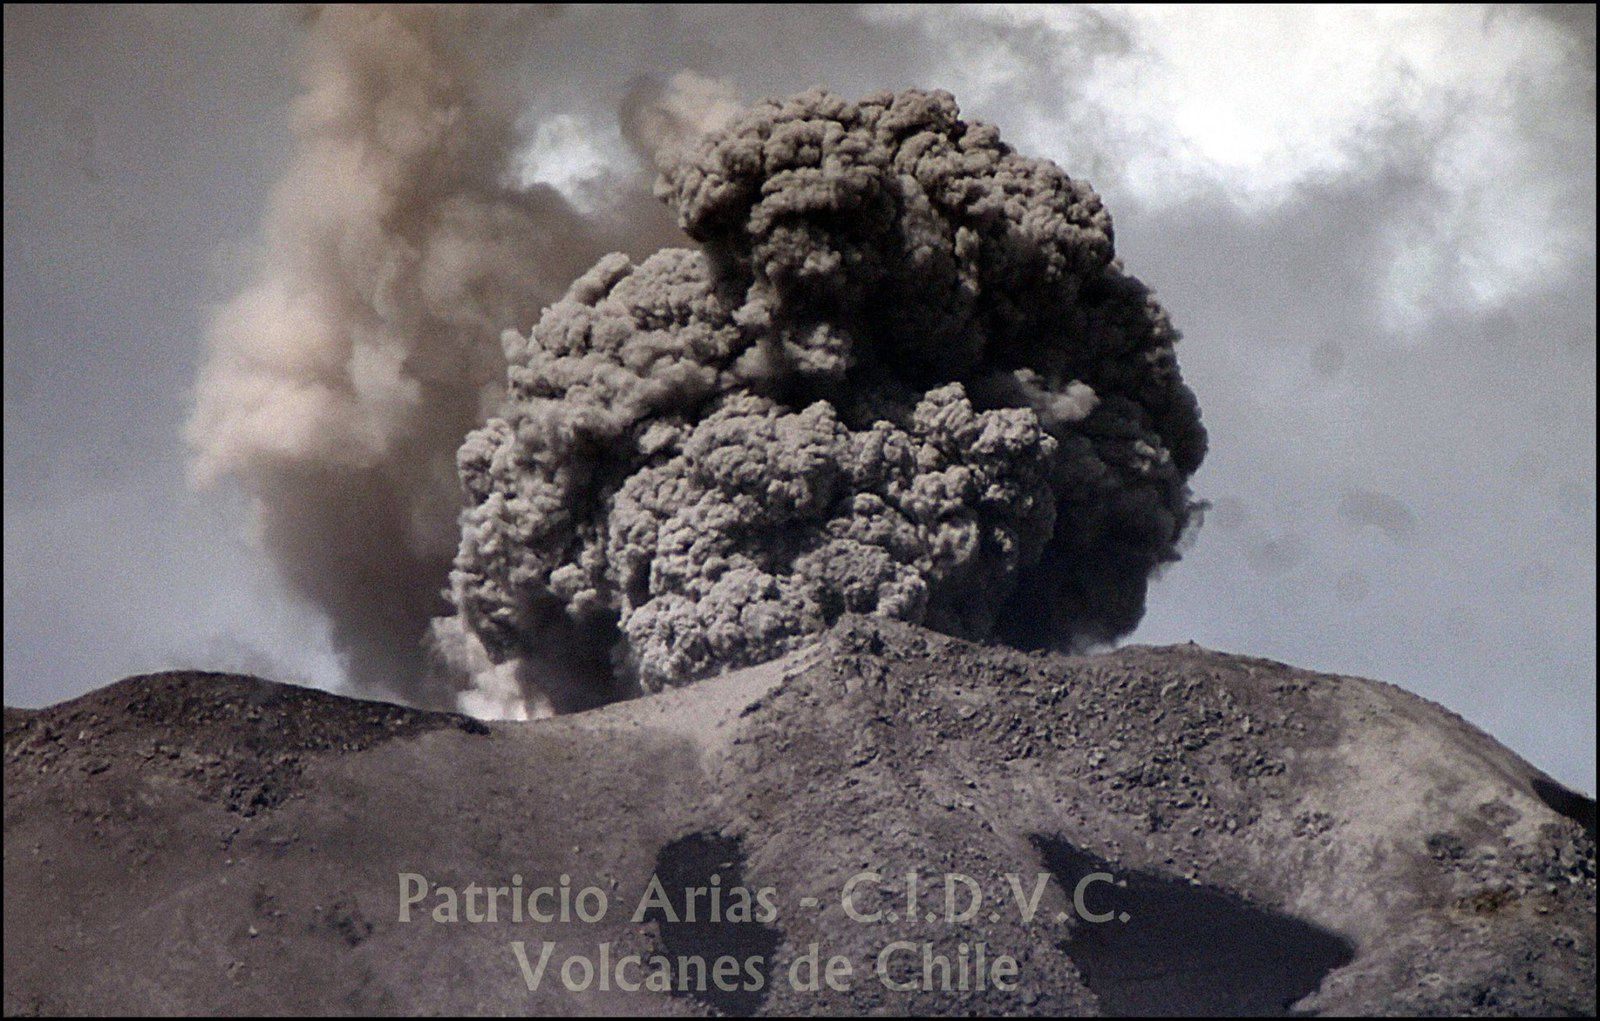 Nevados de Chillan  - panaches doubles le 31 janvier 2016 - photo Patricio Arias / CIDVC Volcanes de Chile